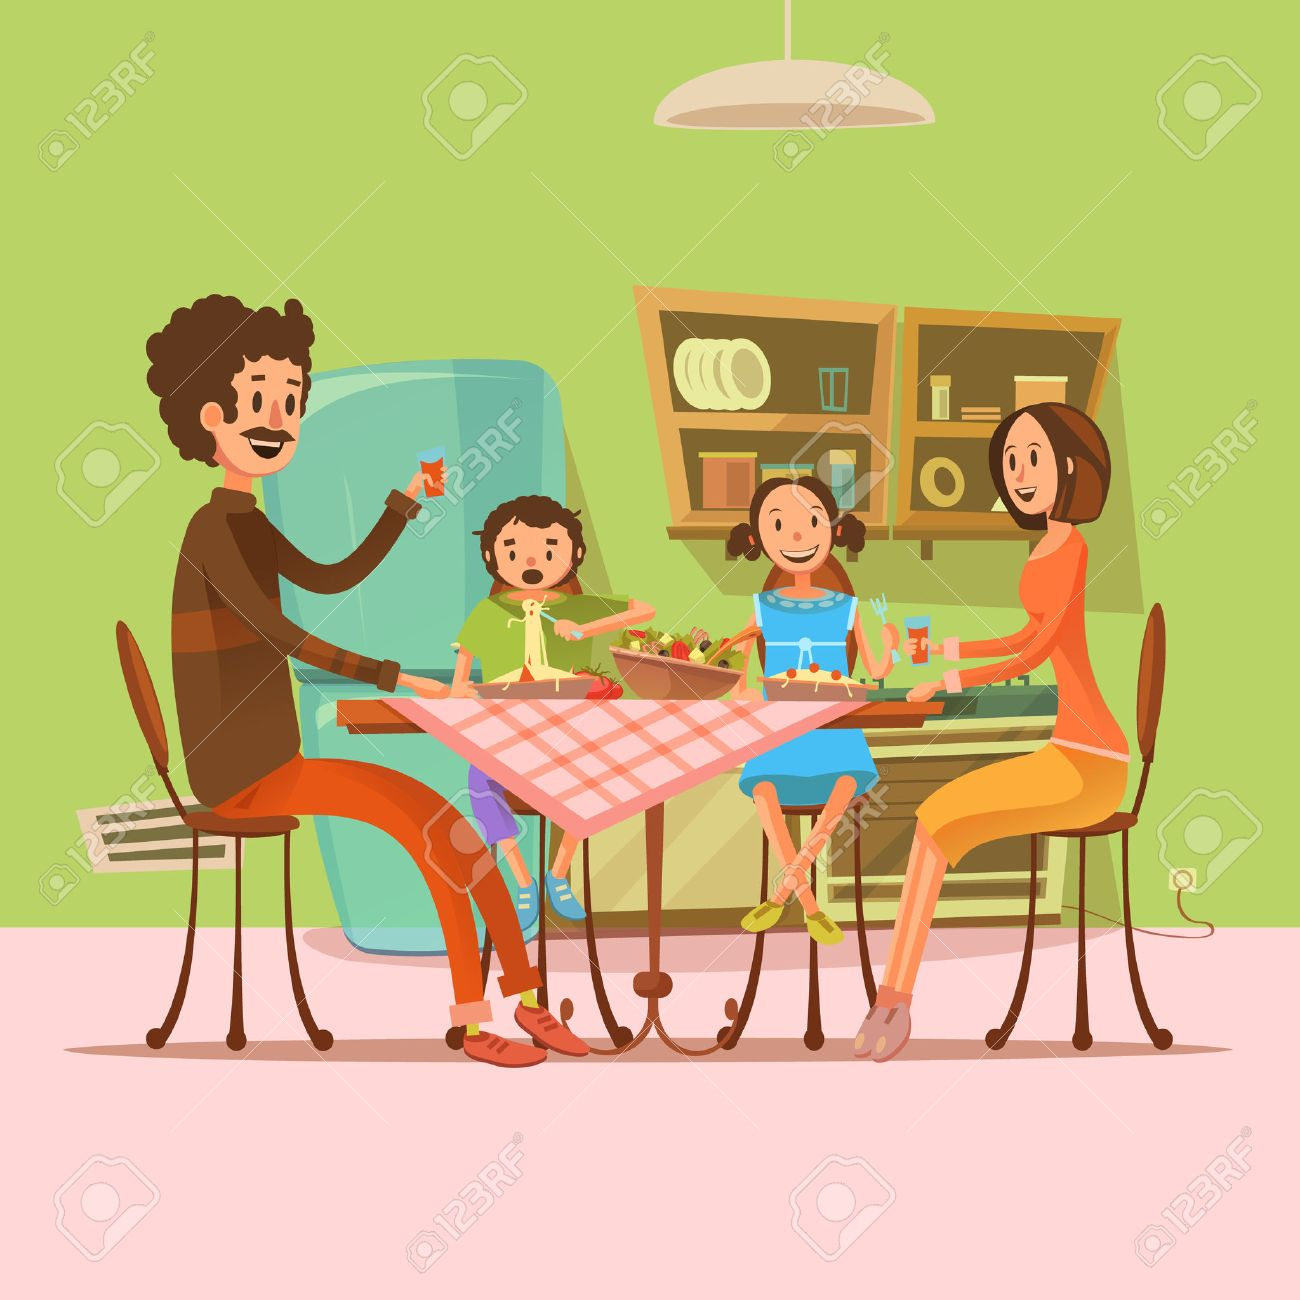 Cartoon kitchen table - Family Having Meal In The Kitchen With Fridge And Table Retro Cartoon Vector Illustration Stock Vector